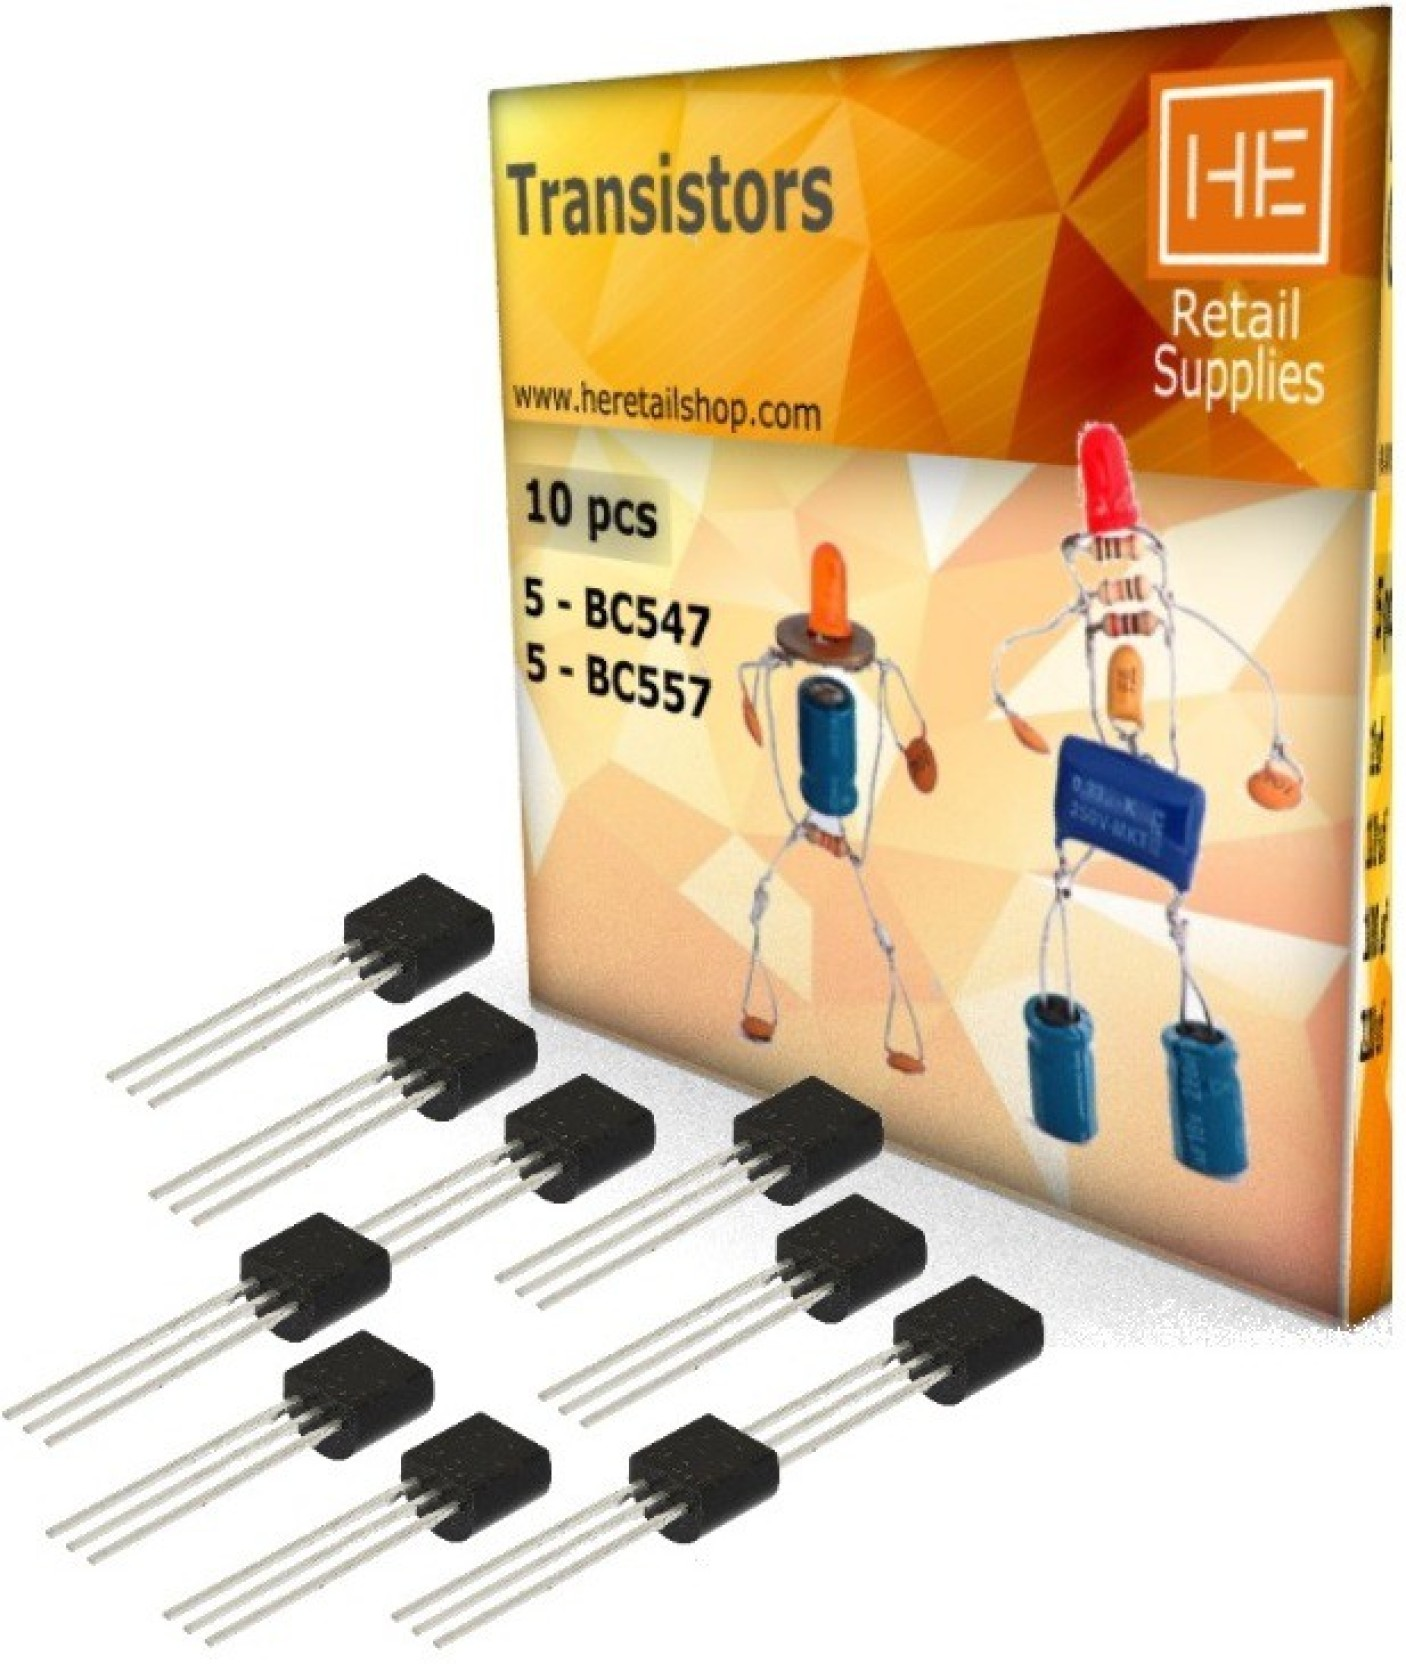 He Retail 5pcs Pnp Npn Bc 547 557 Transistor Electronic Components Regulator 33v 1a With Projects Circuits Add To Cart